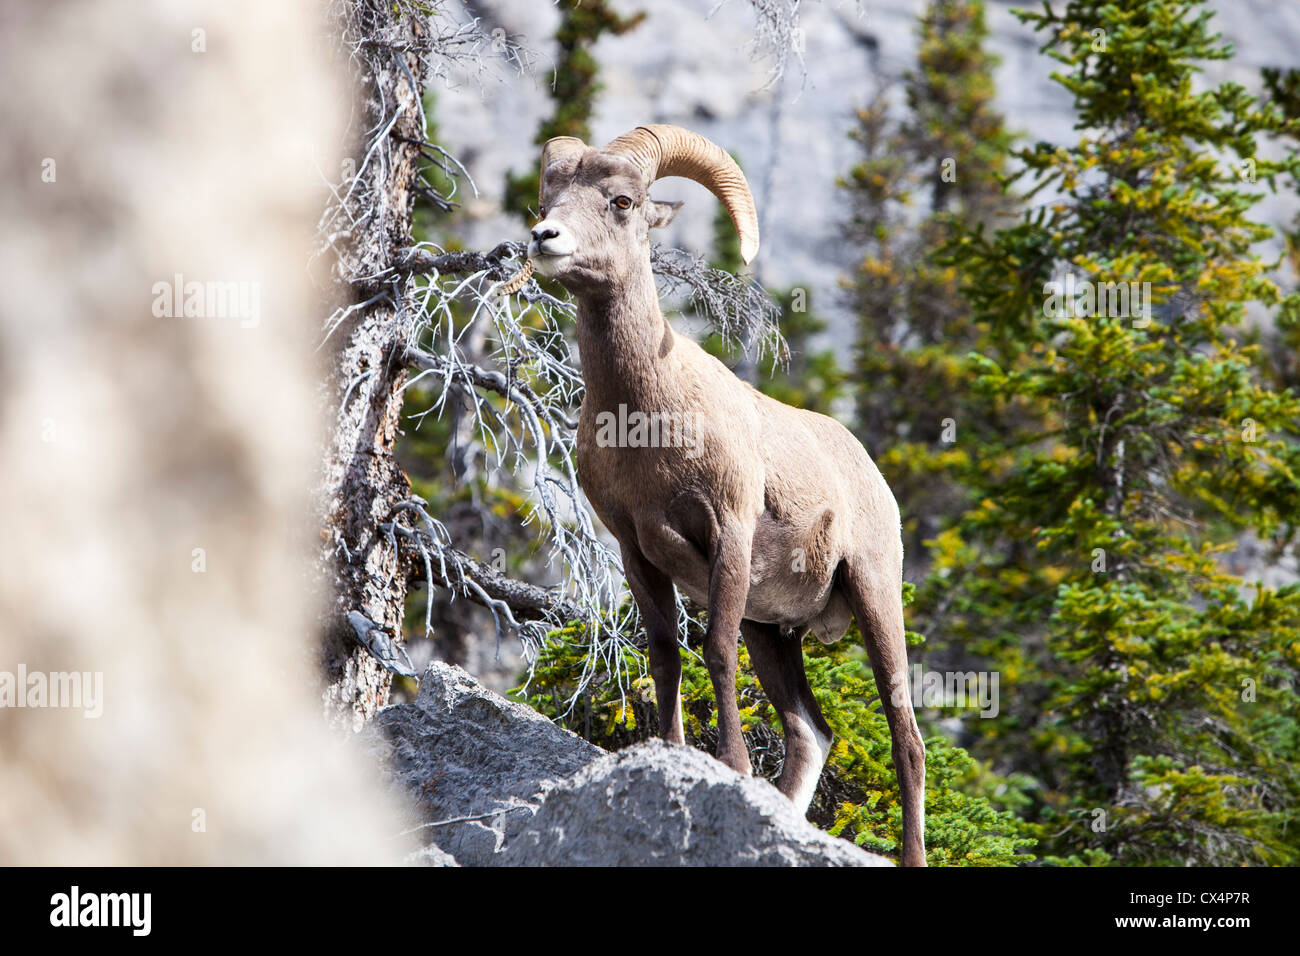 A Male Big Horn Sheep (Ovis canadensis) in the Rocky Mountains, Canada. - Stock Image